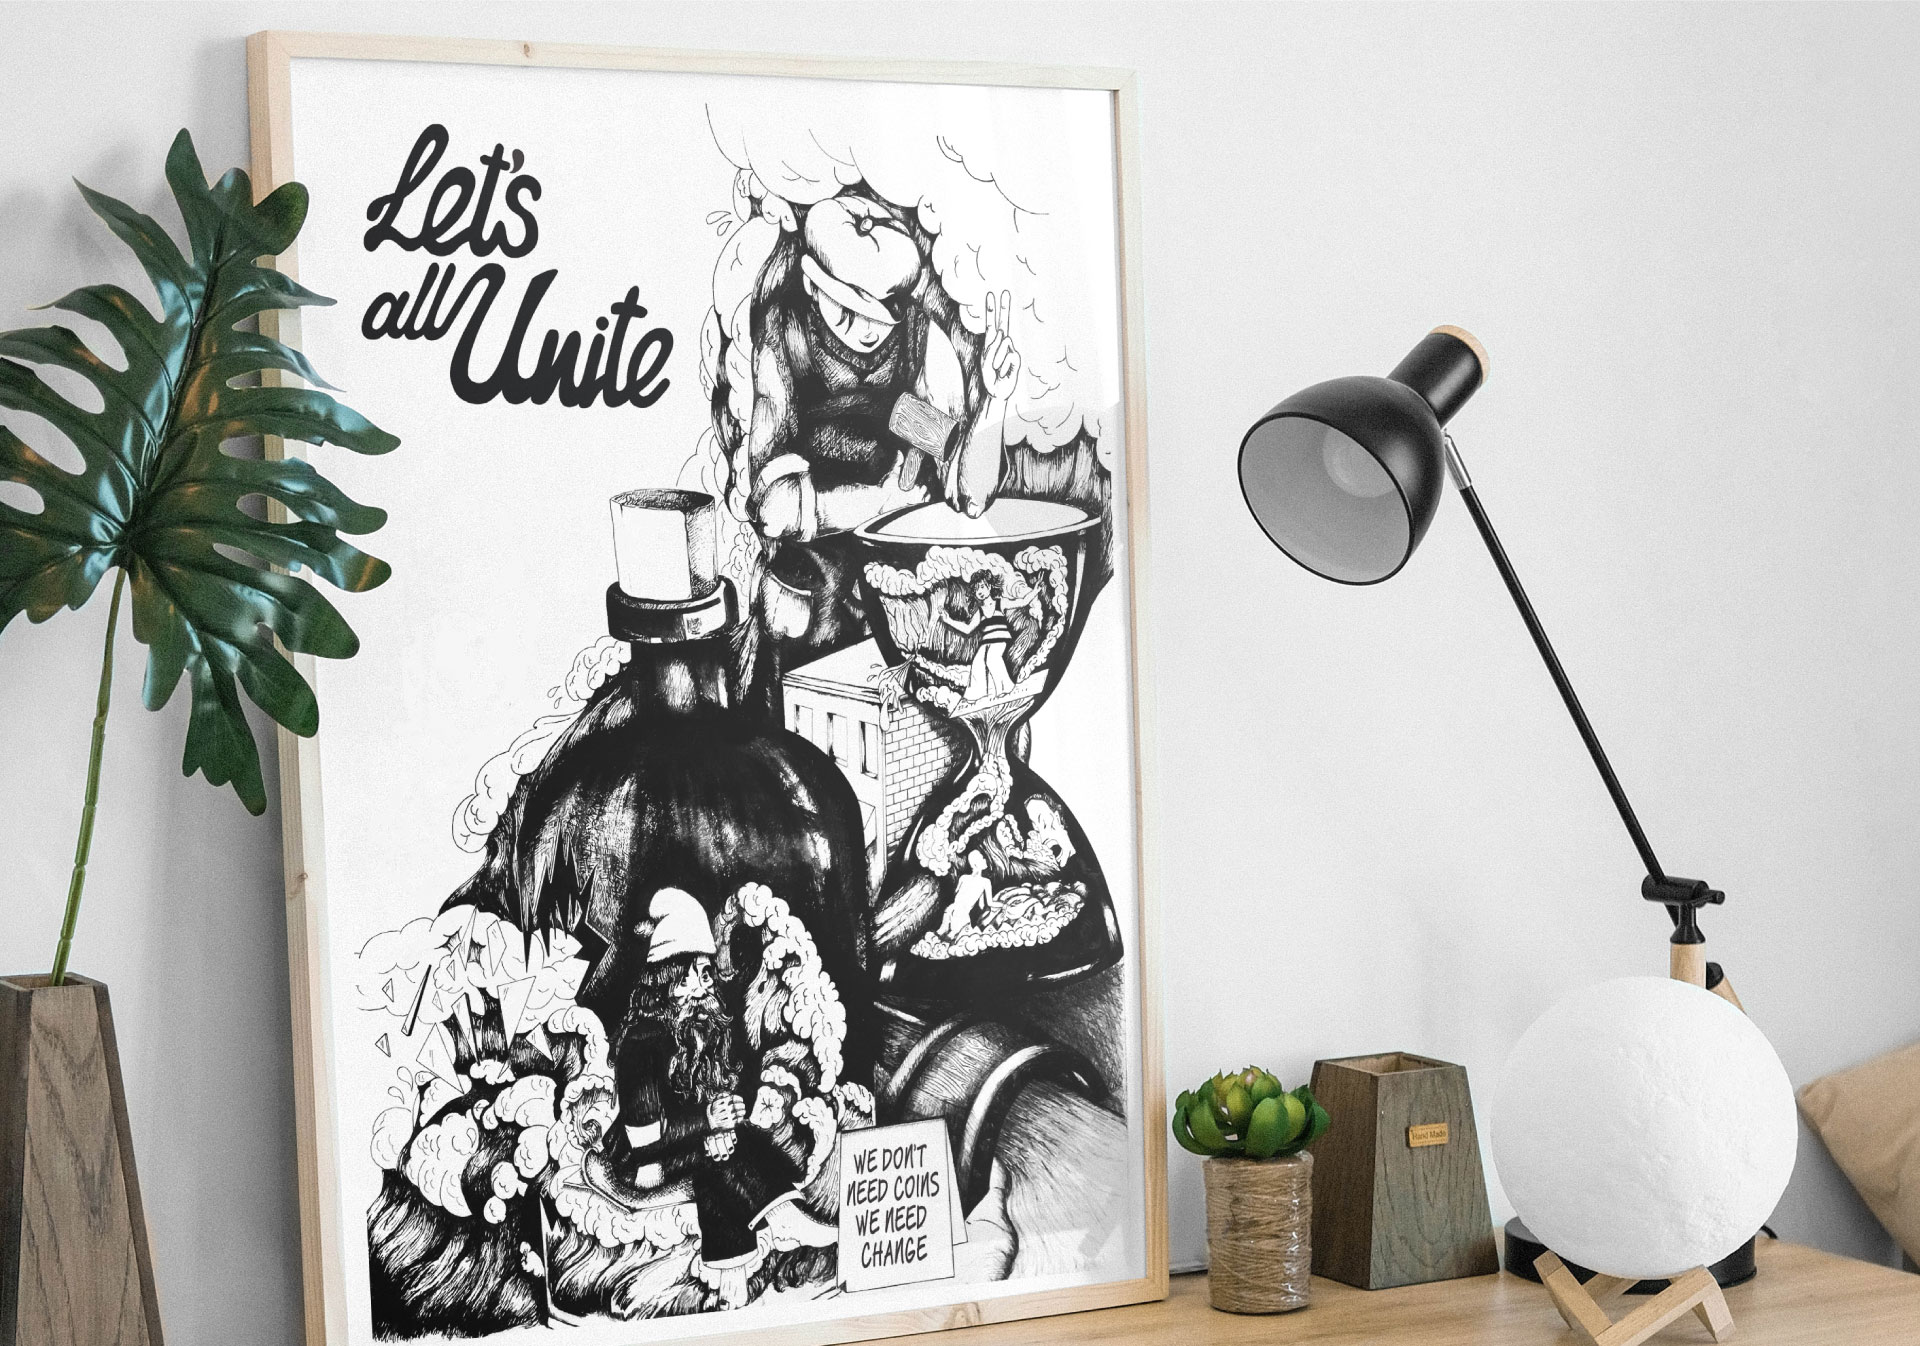 let's all unite poster